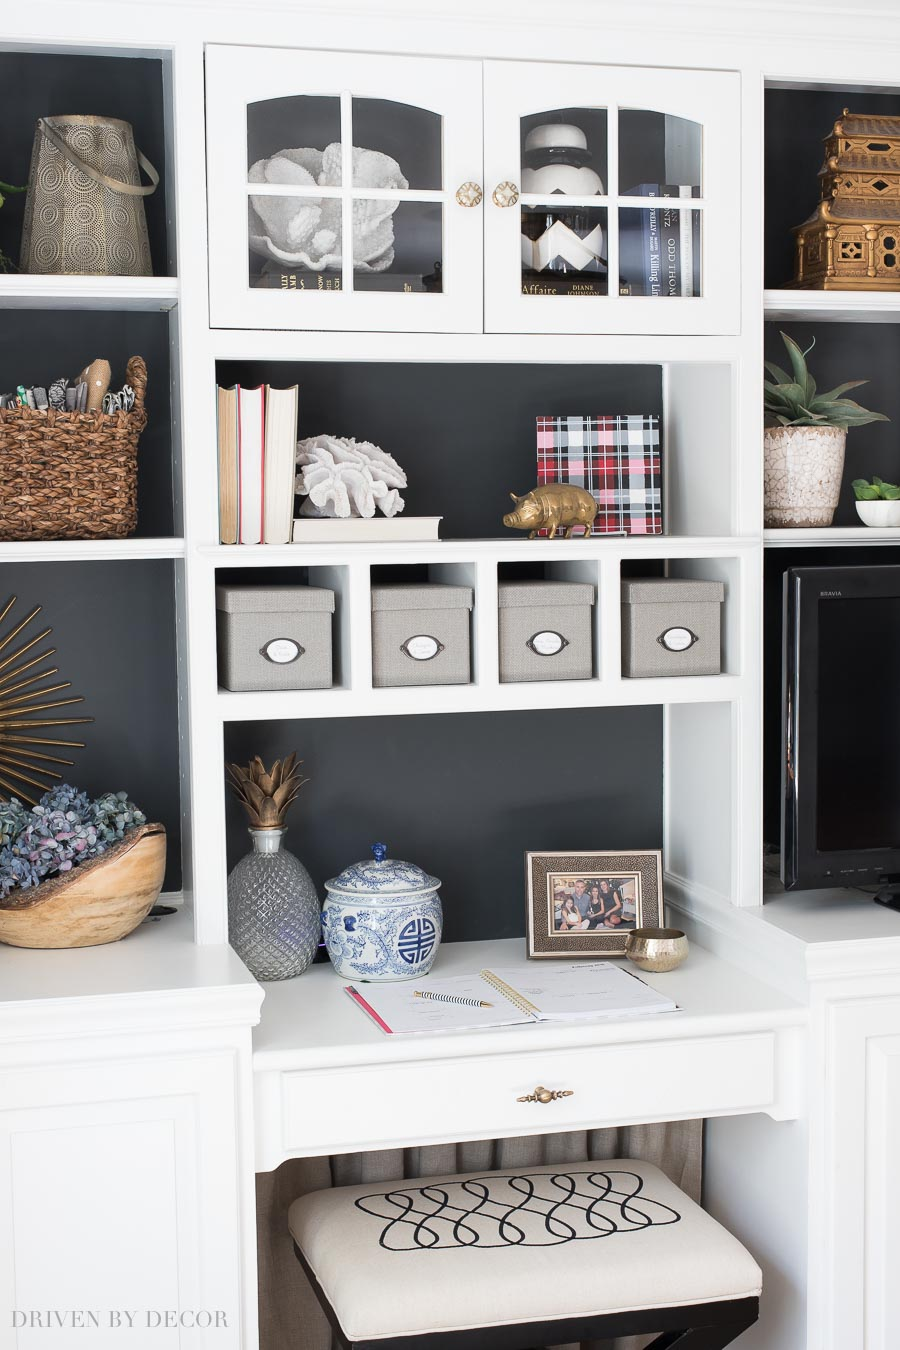 Sophisticated How To Decorate Shelves Formulas That Work Home Decorating Shelves Tips On How To Style Your Bookcase home decor Home Decorative Shelving